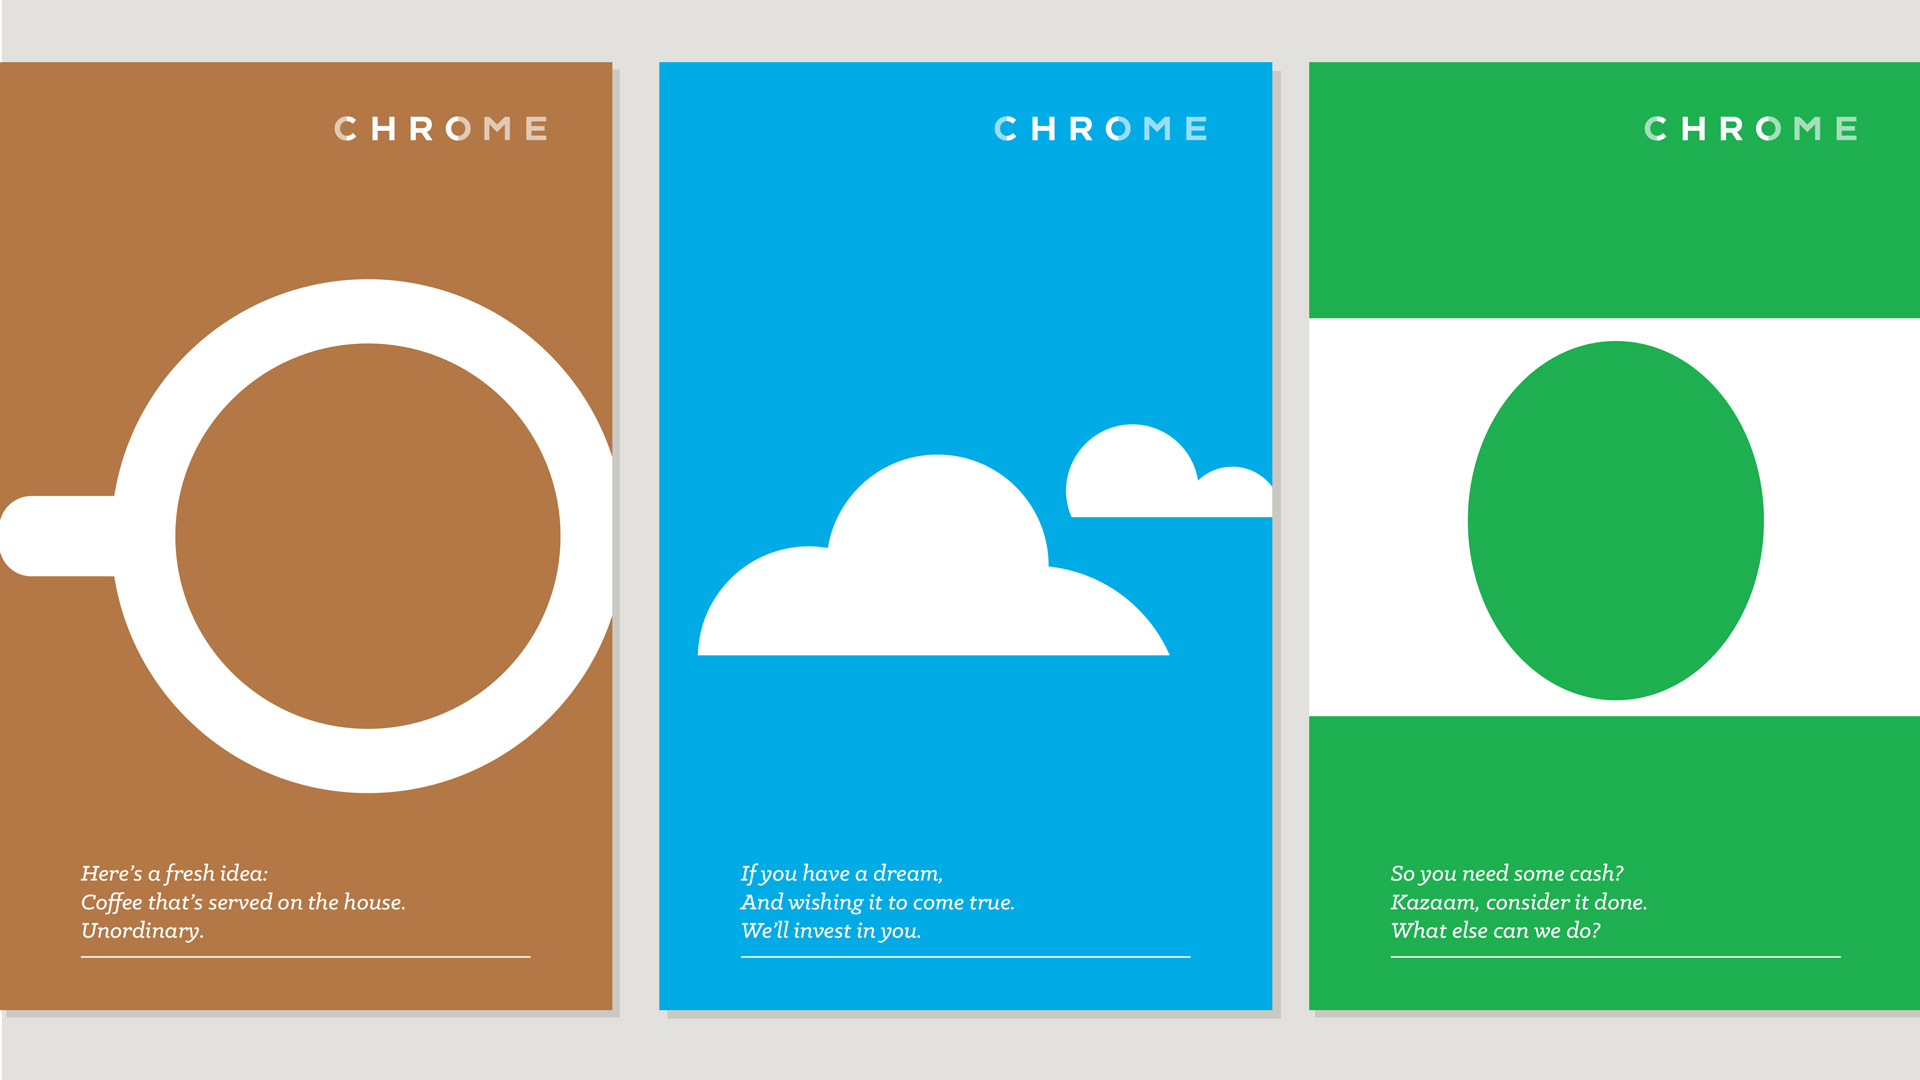 Chrome 11 posters